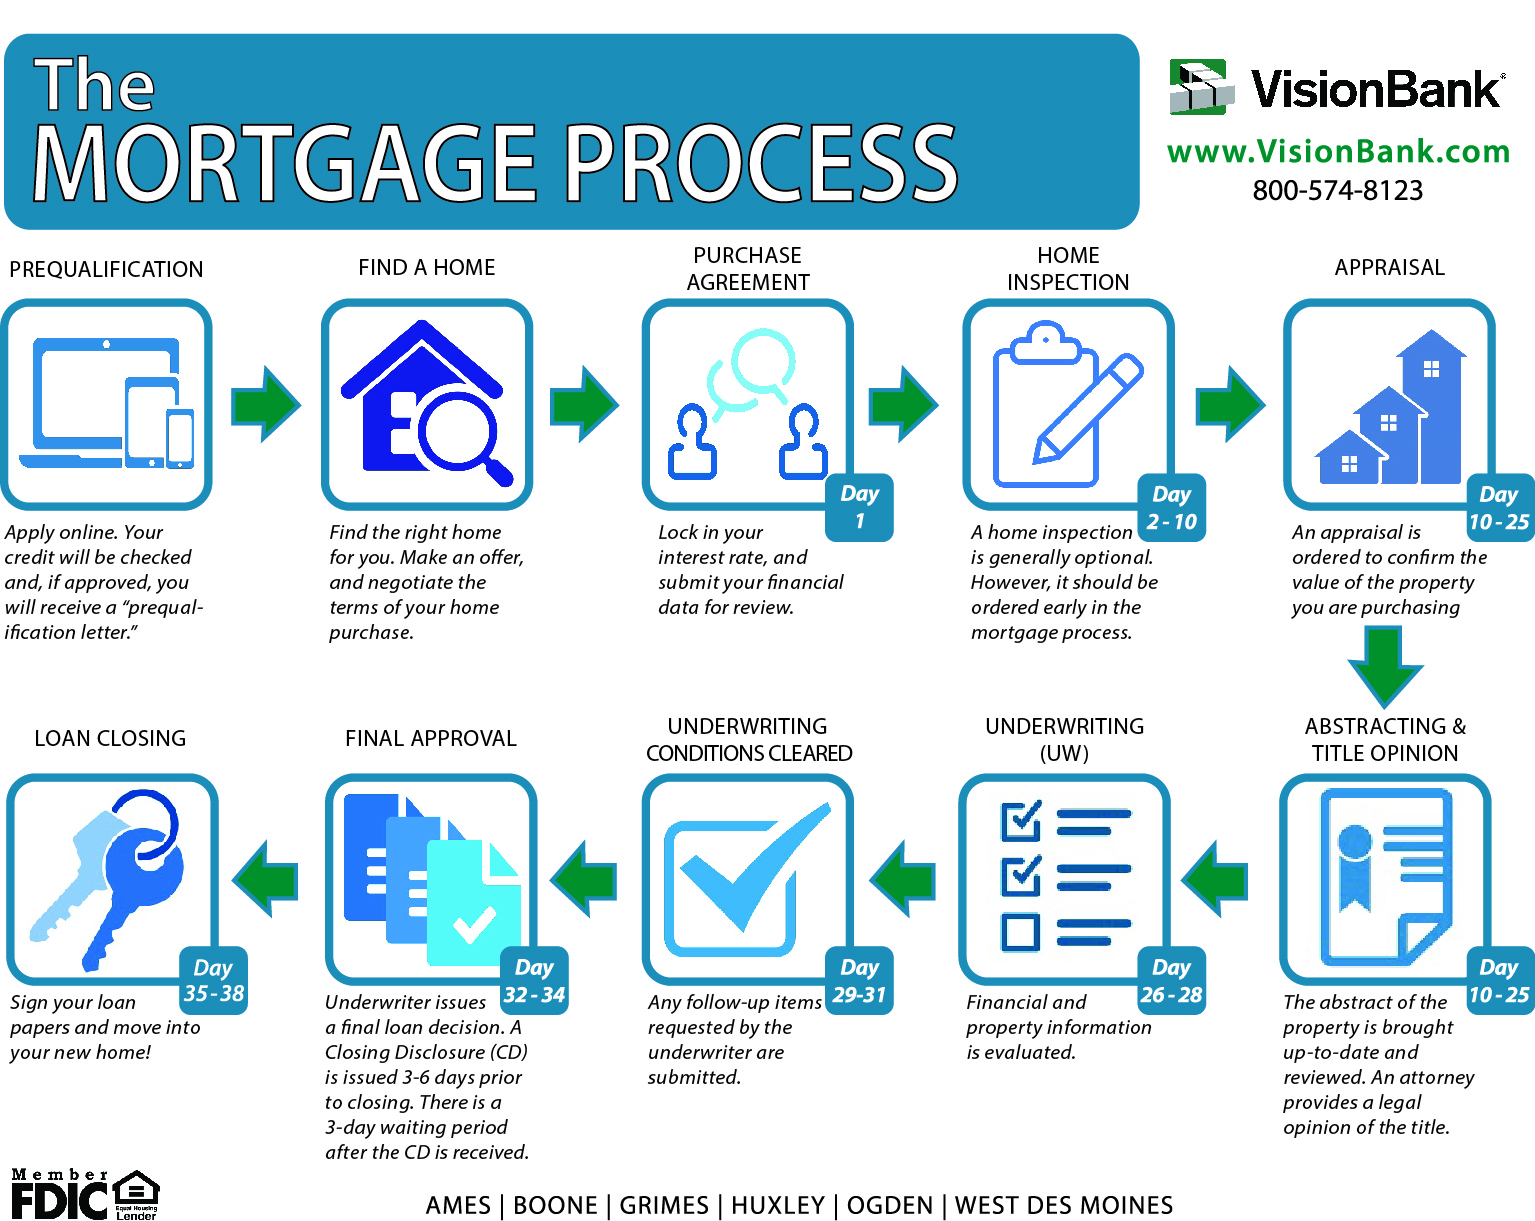 The Mortgage Process Guide